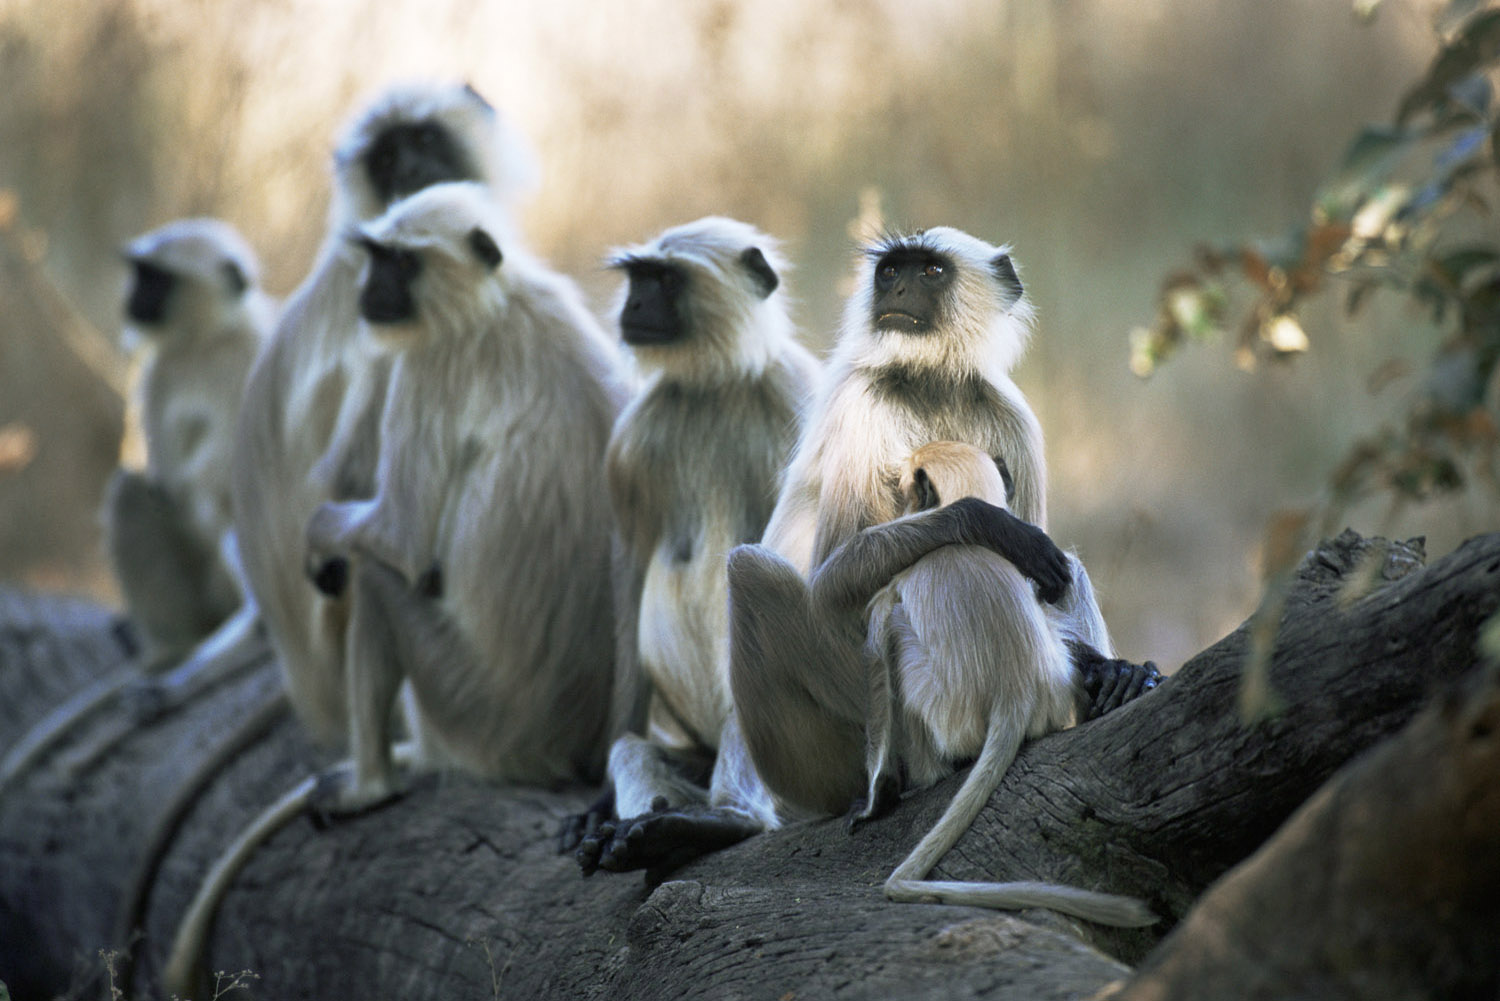 Hanuman langur monkeys resting on log, Kanha National Park, Madhya Pradesh, India